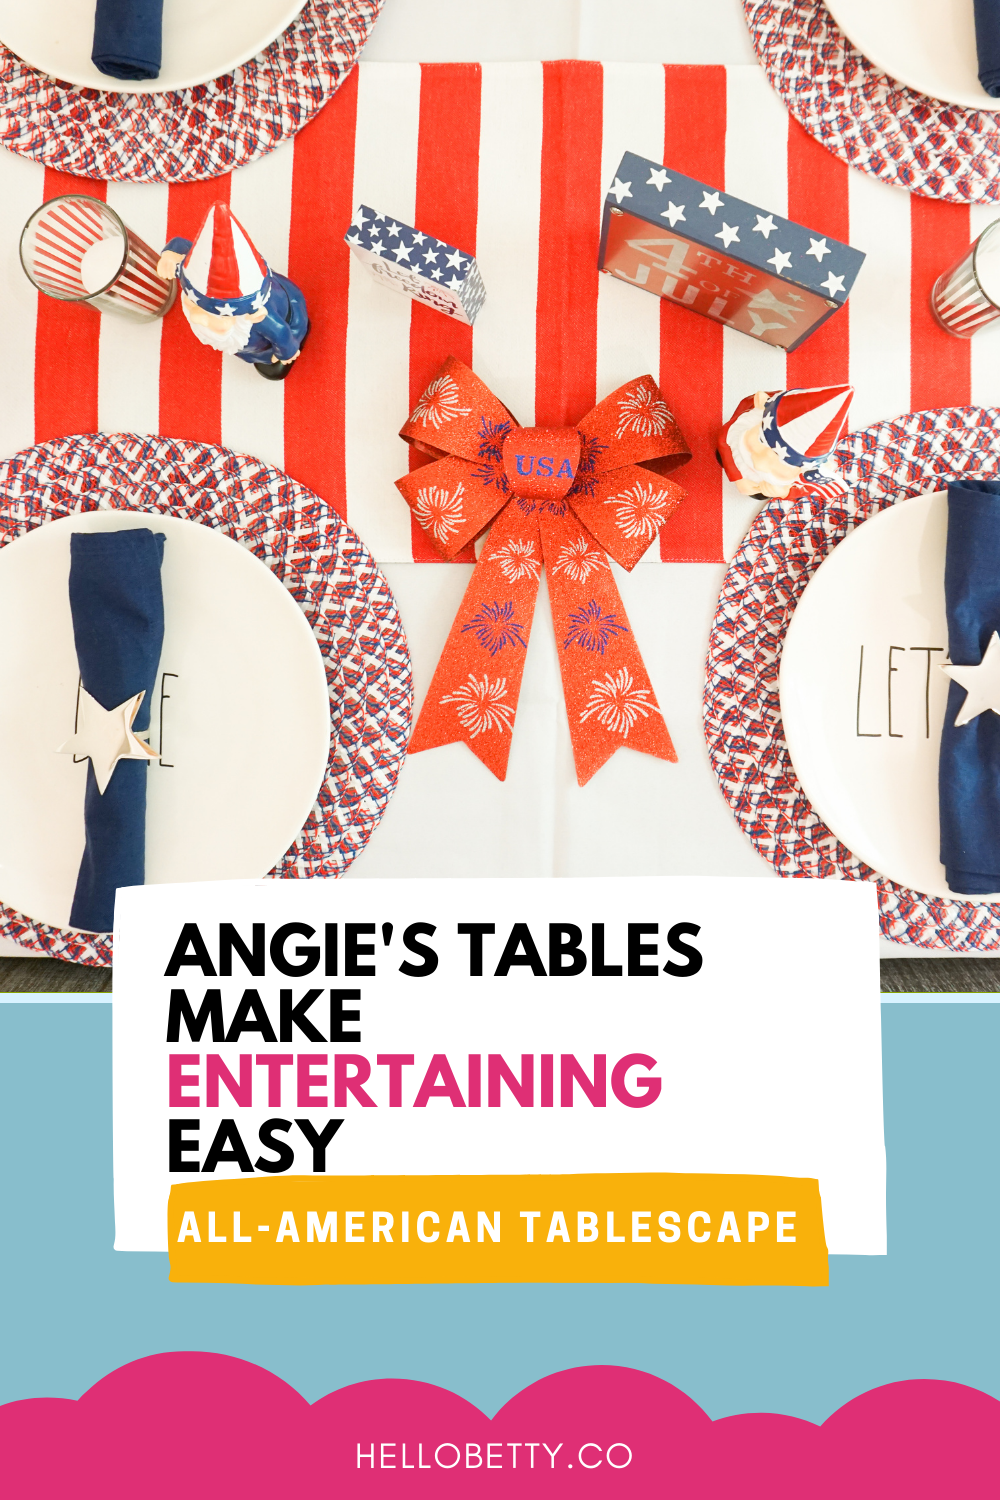 Angie's Tables Make Entertaining Easy